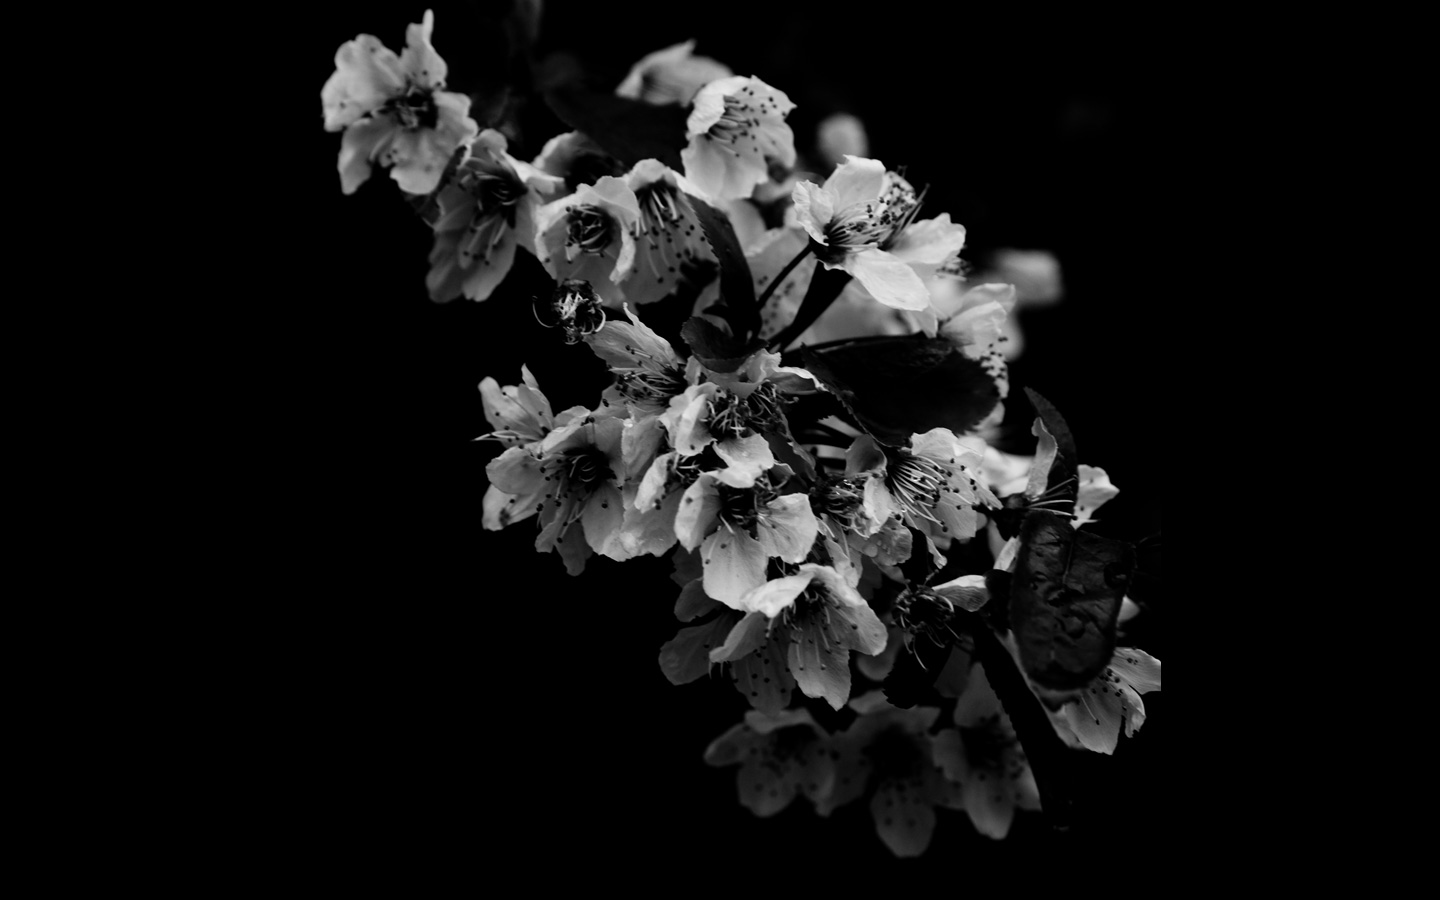 Black Wallpaper With White Flowers Wallpapersafari